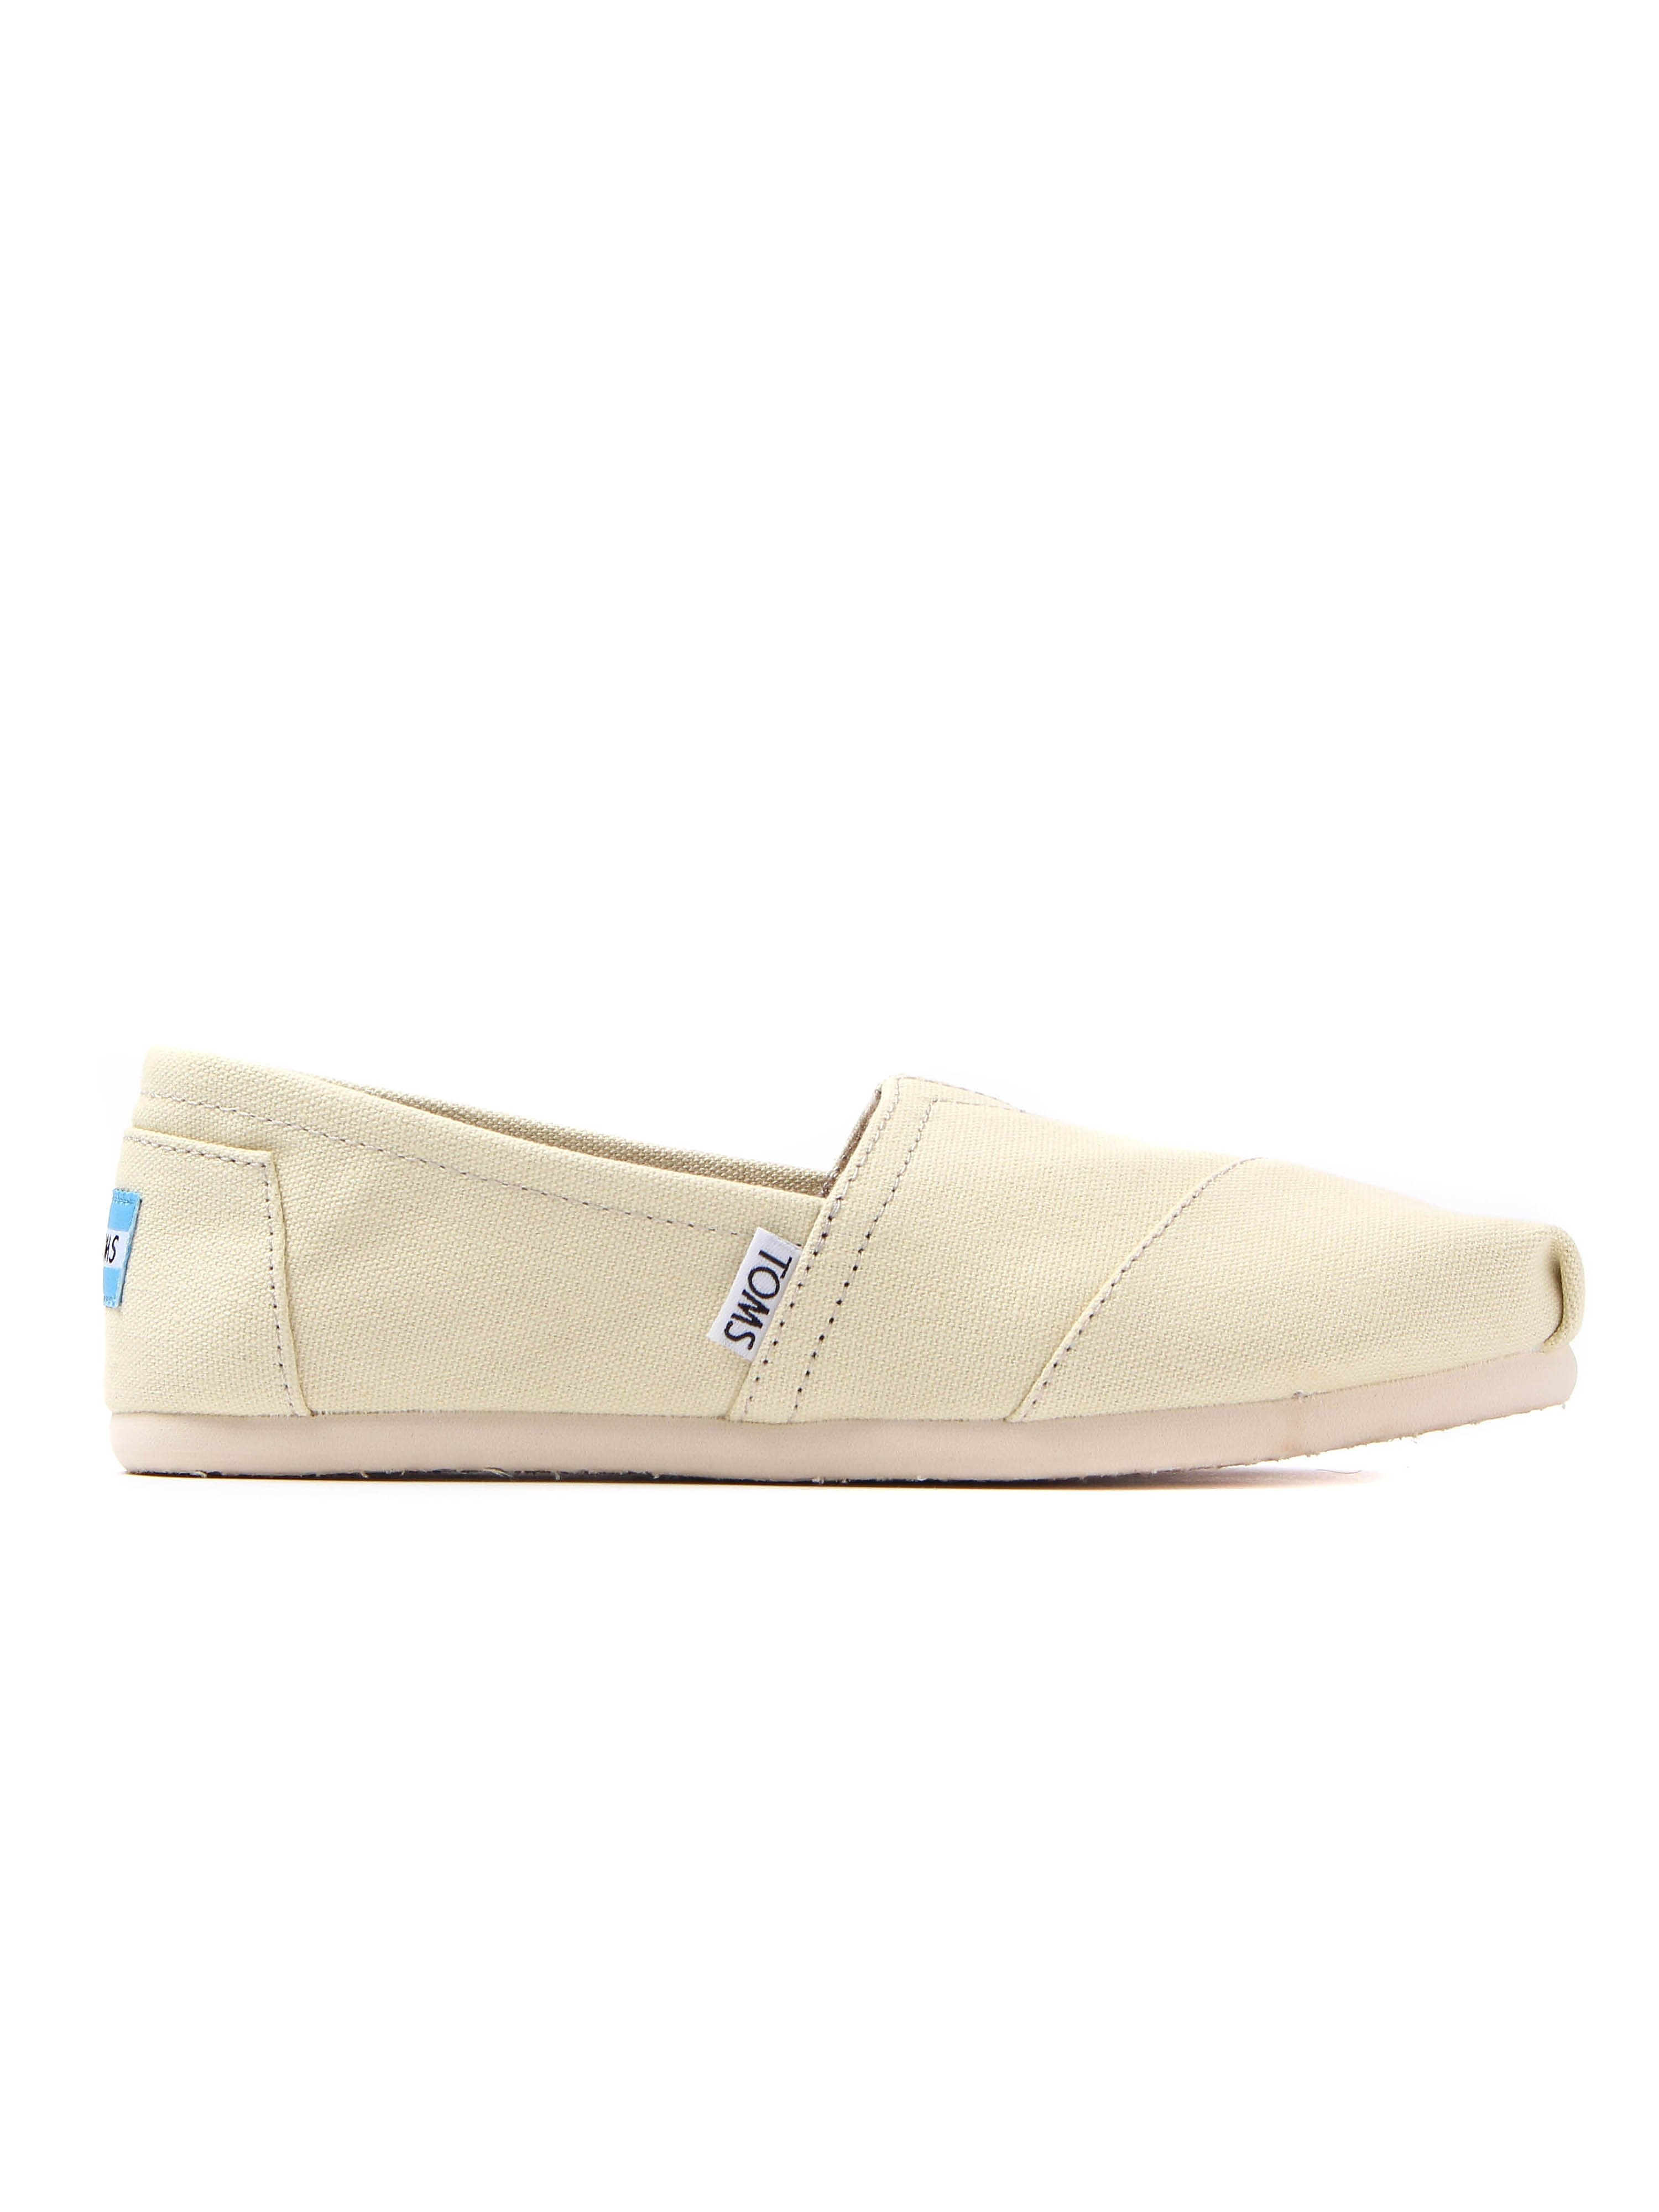 Toms Classic Womens - Natural Canvas